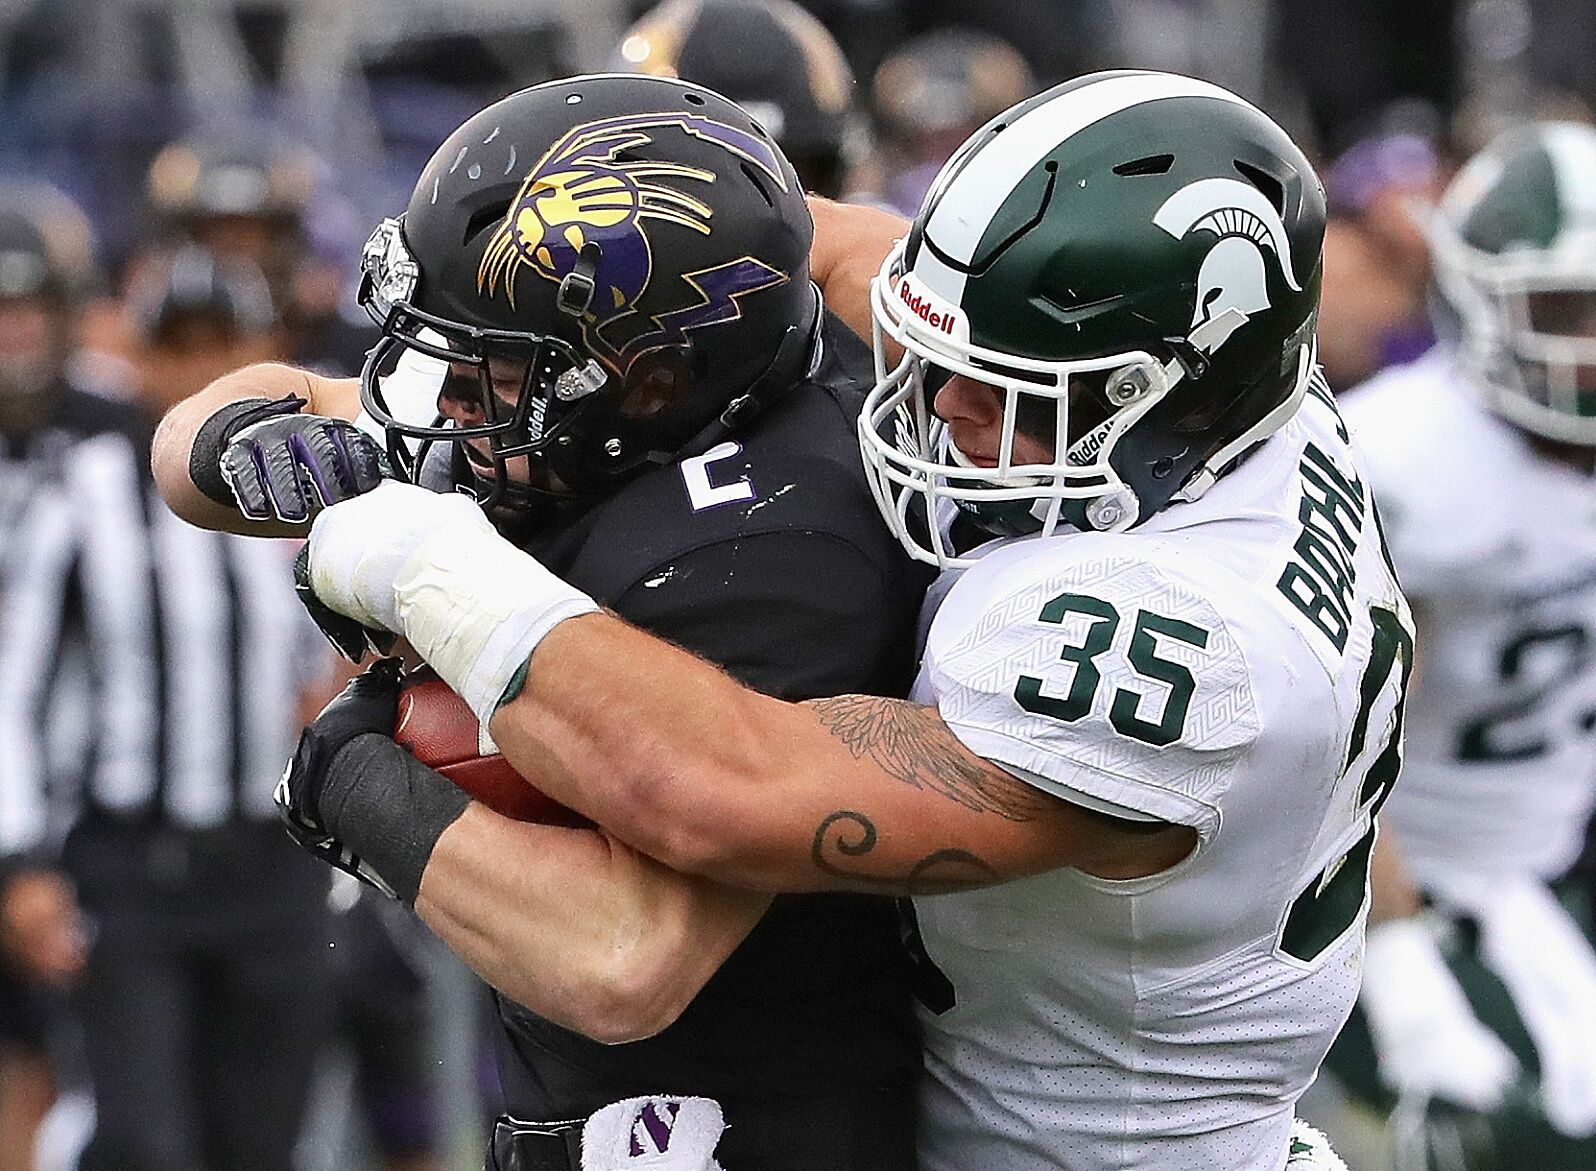 Michigan State Football: 5 biggest storylines after spring